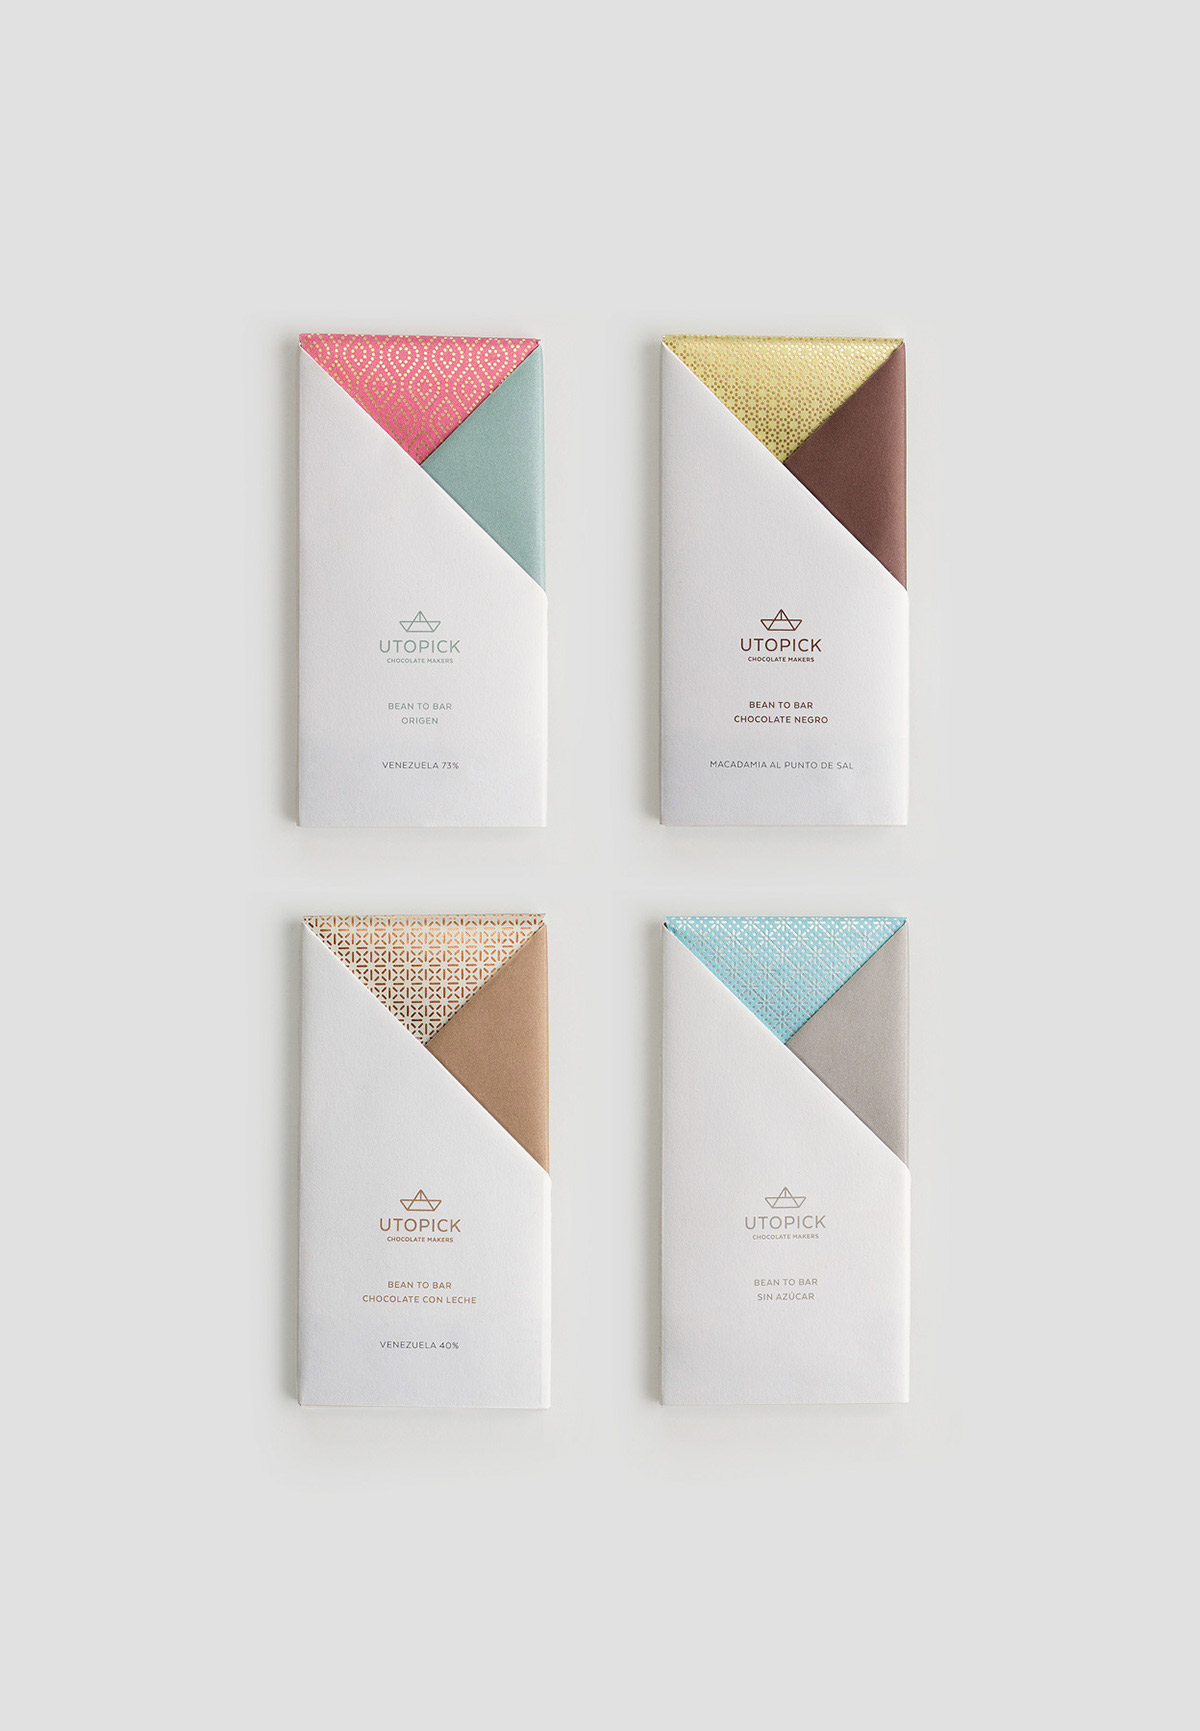 Flavors & Textures - Packaging Design for Utopick Chocolates